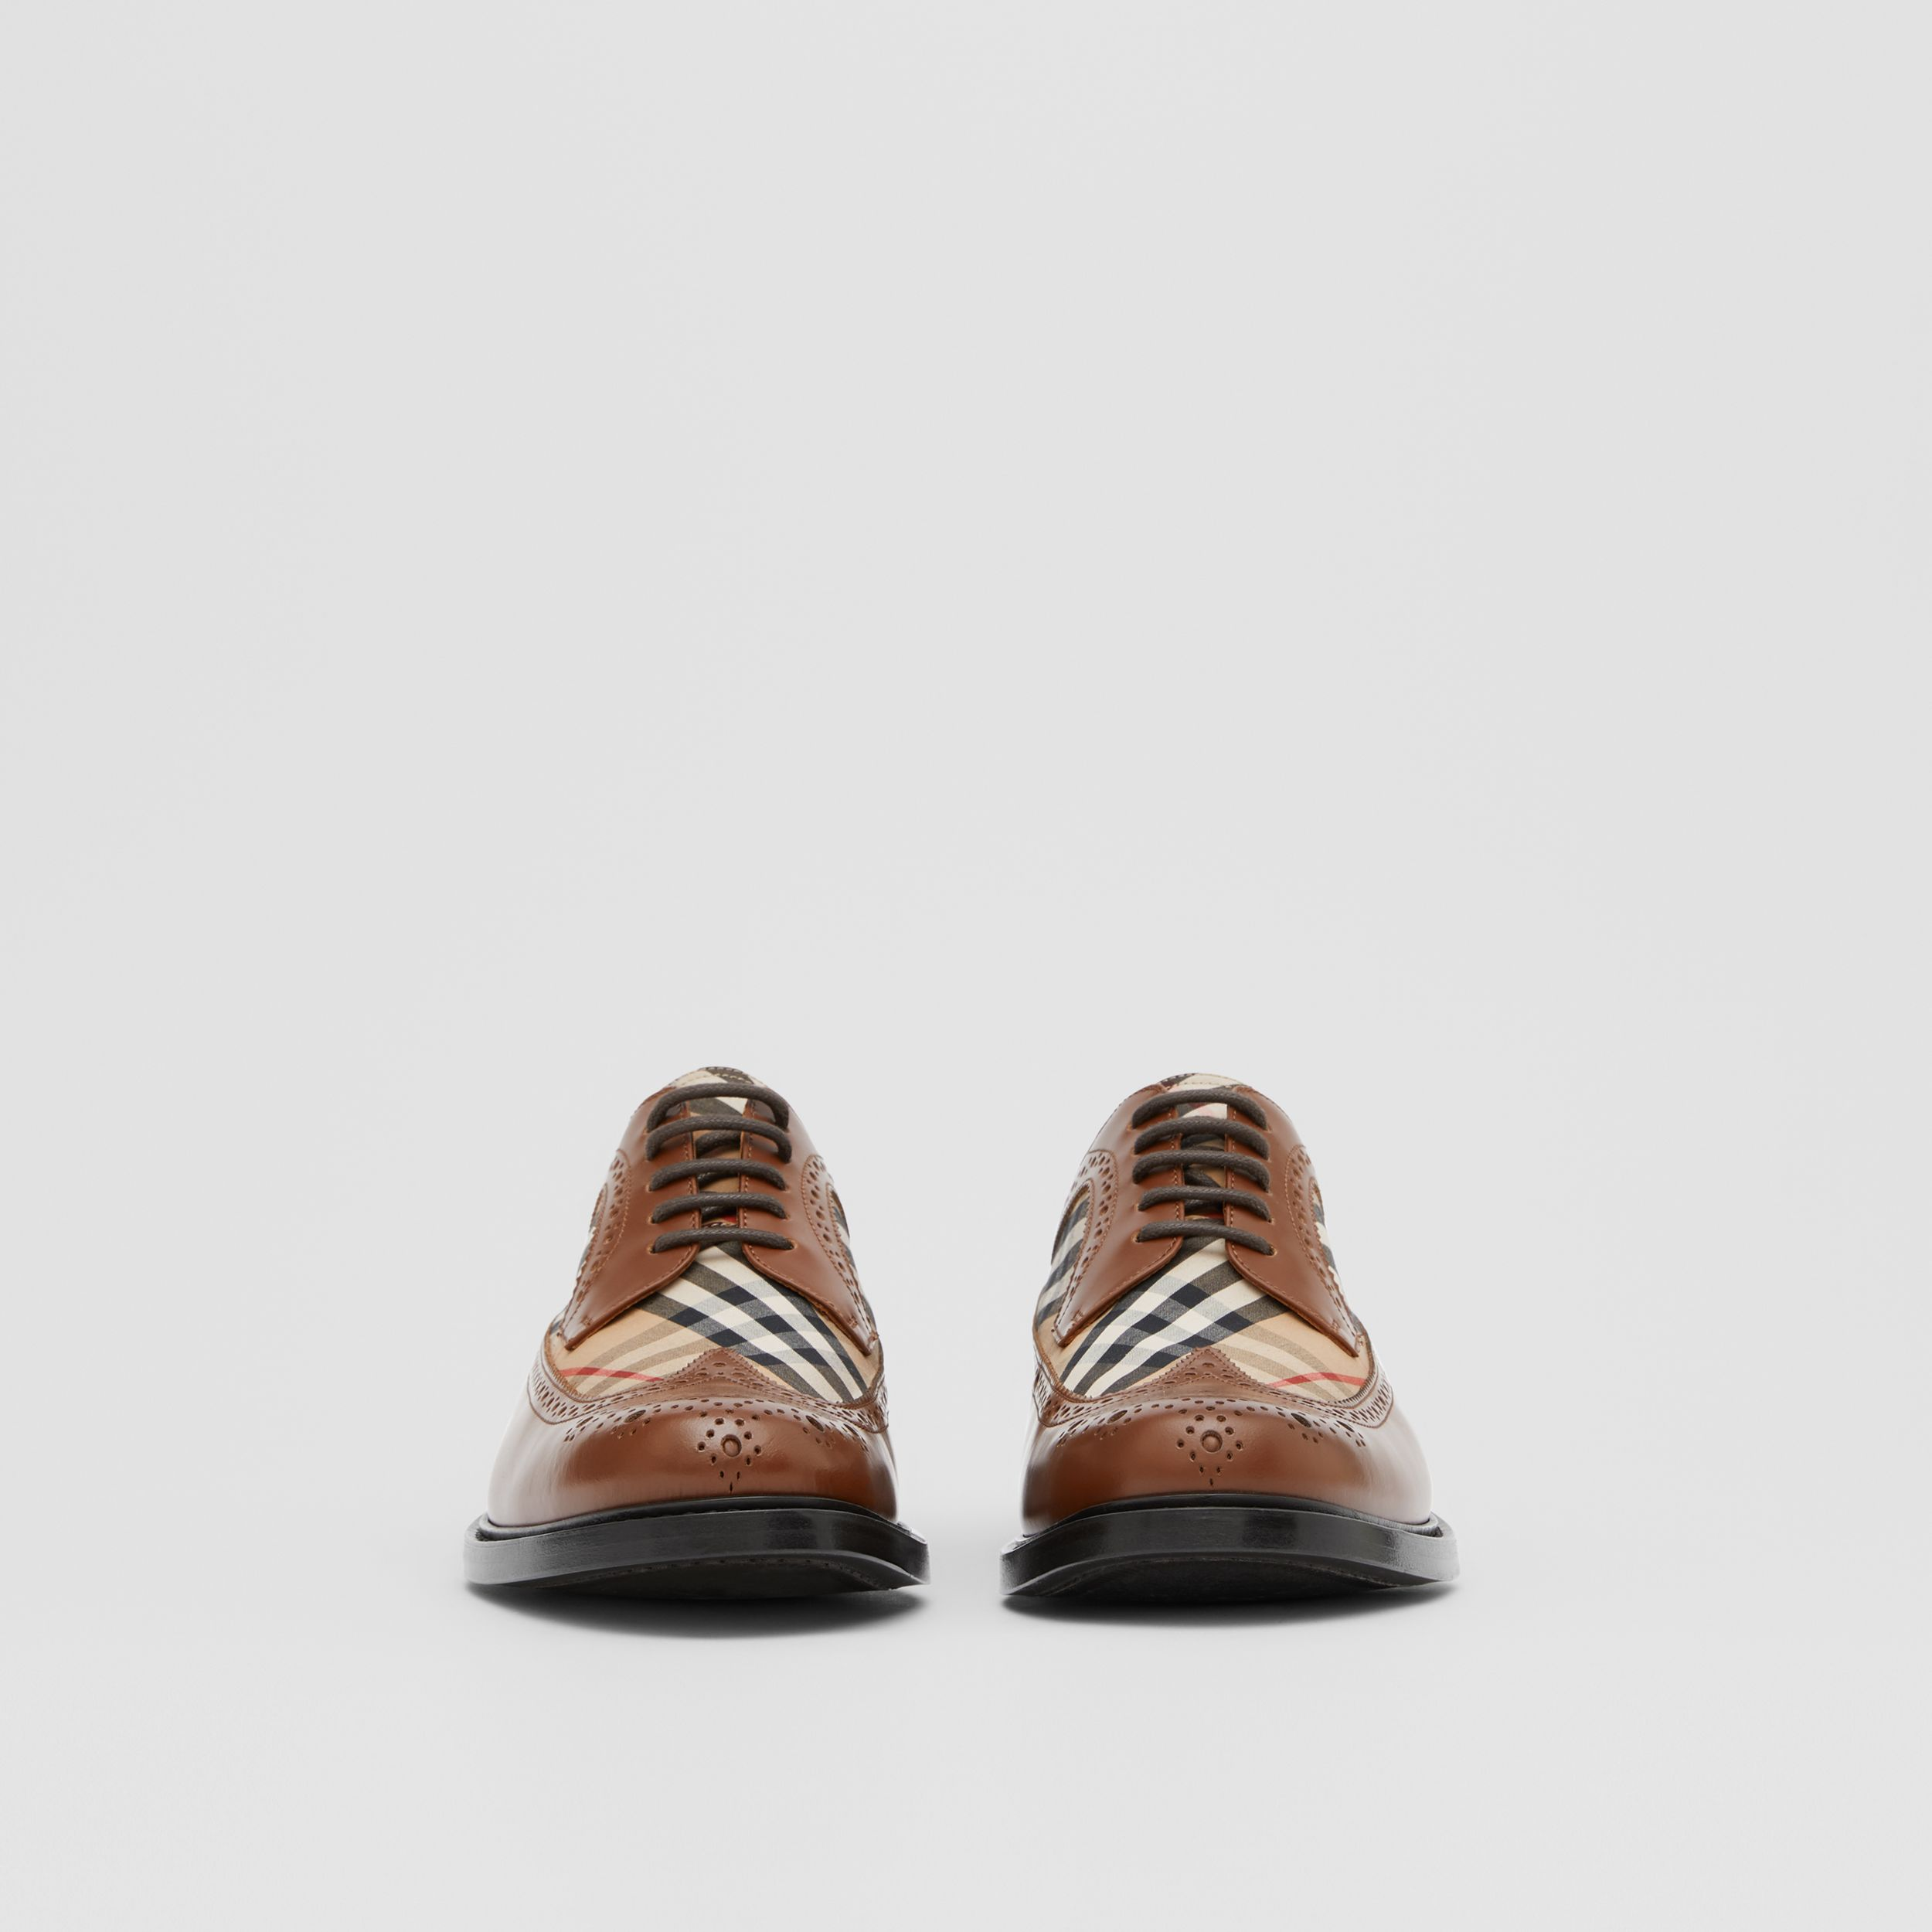 Brogue Detail Leather and Vintage Check Derby Shoes in Tan/archive Beige - Men | Burberry - 4